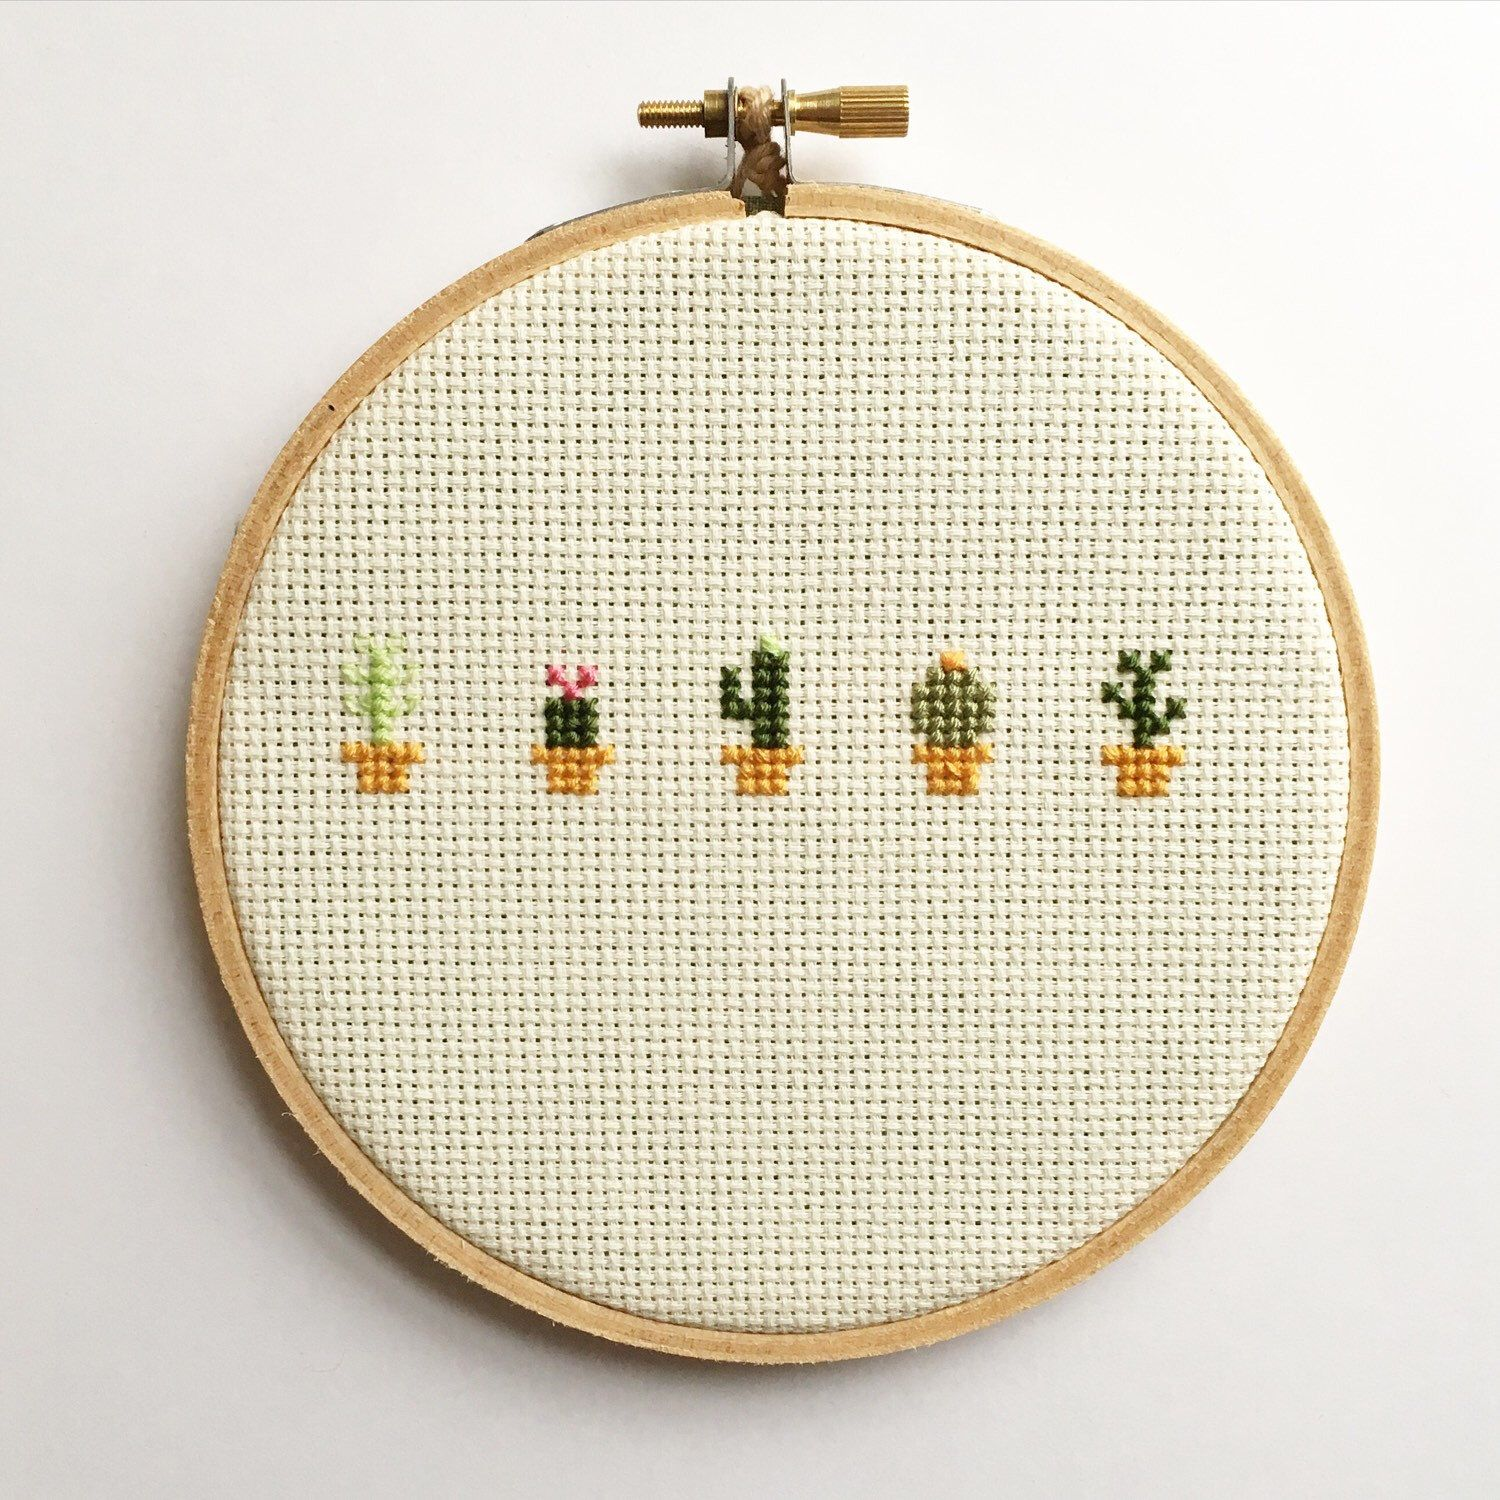 Cactus Cross Stitch - Hoop Art - Embroidery - Succulents by ...